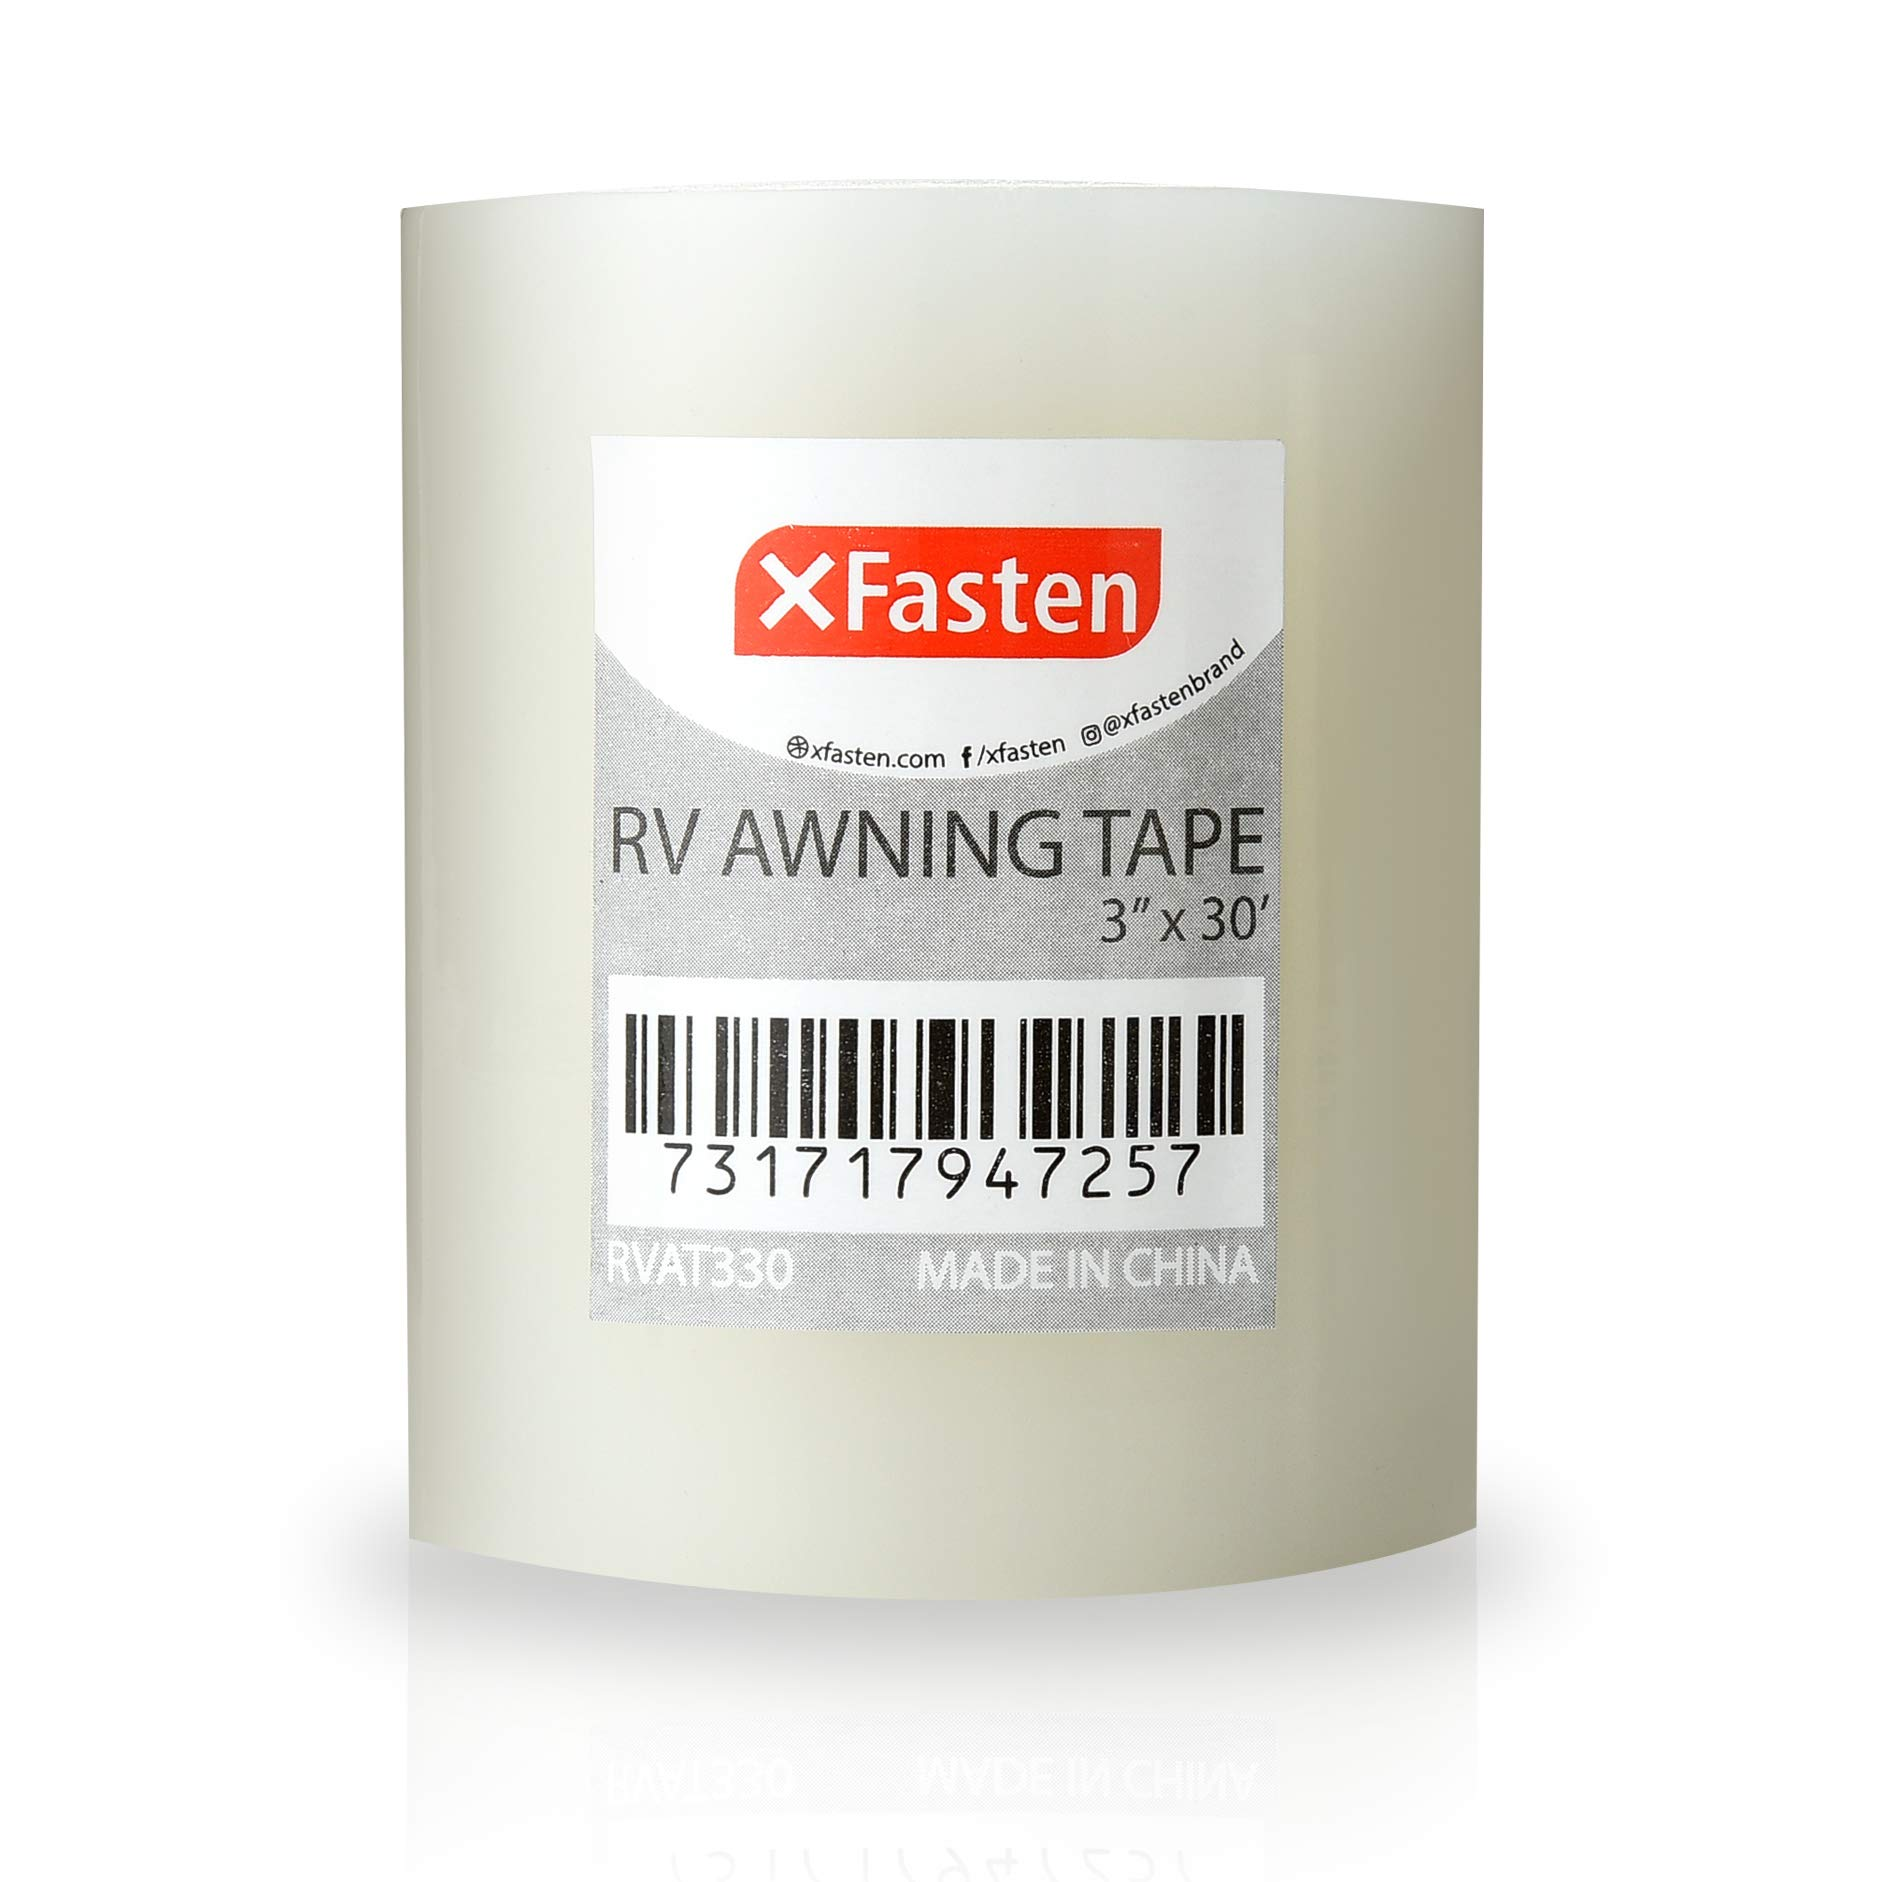 XFasten RV Awning Repair Tape, 3-Inches x 30 Feet, Waterproof Rip Stop Patch for Vinyl, RV punctures, Camper, Awning, Canopy, Tents, Tarpaulin and Greenhouse by XFasten